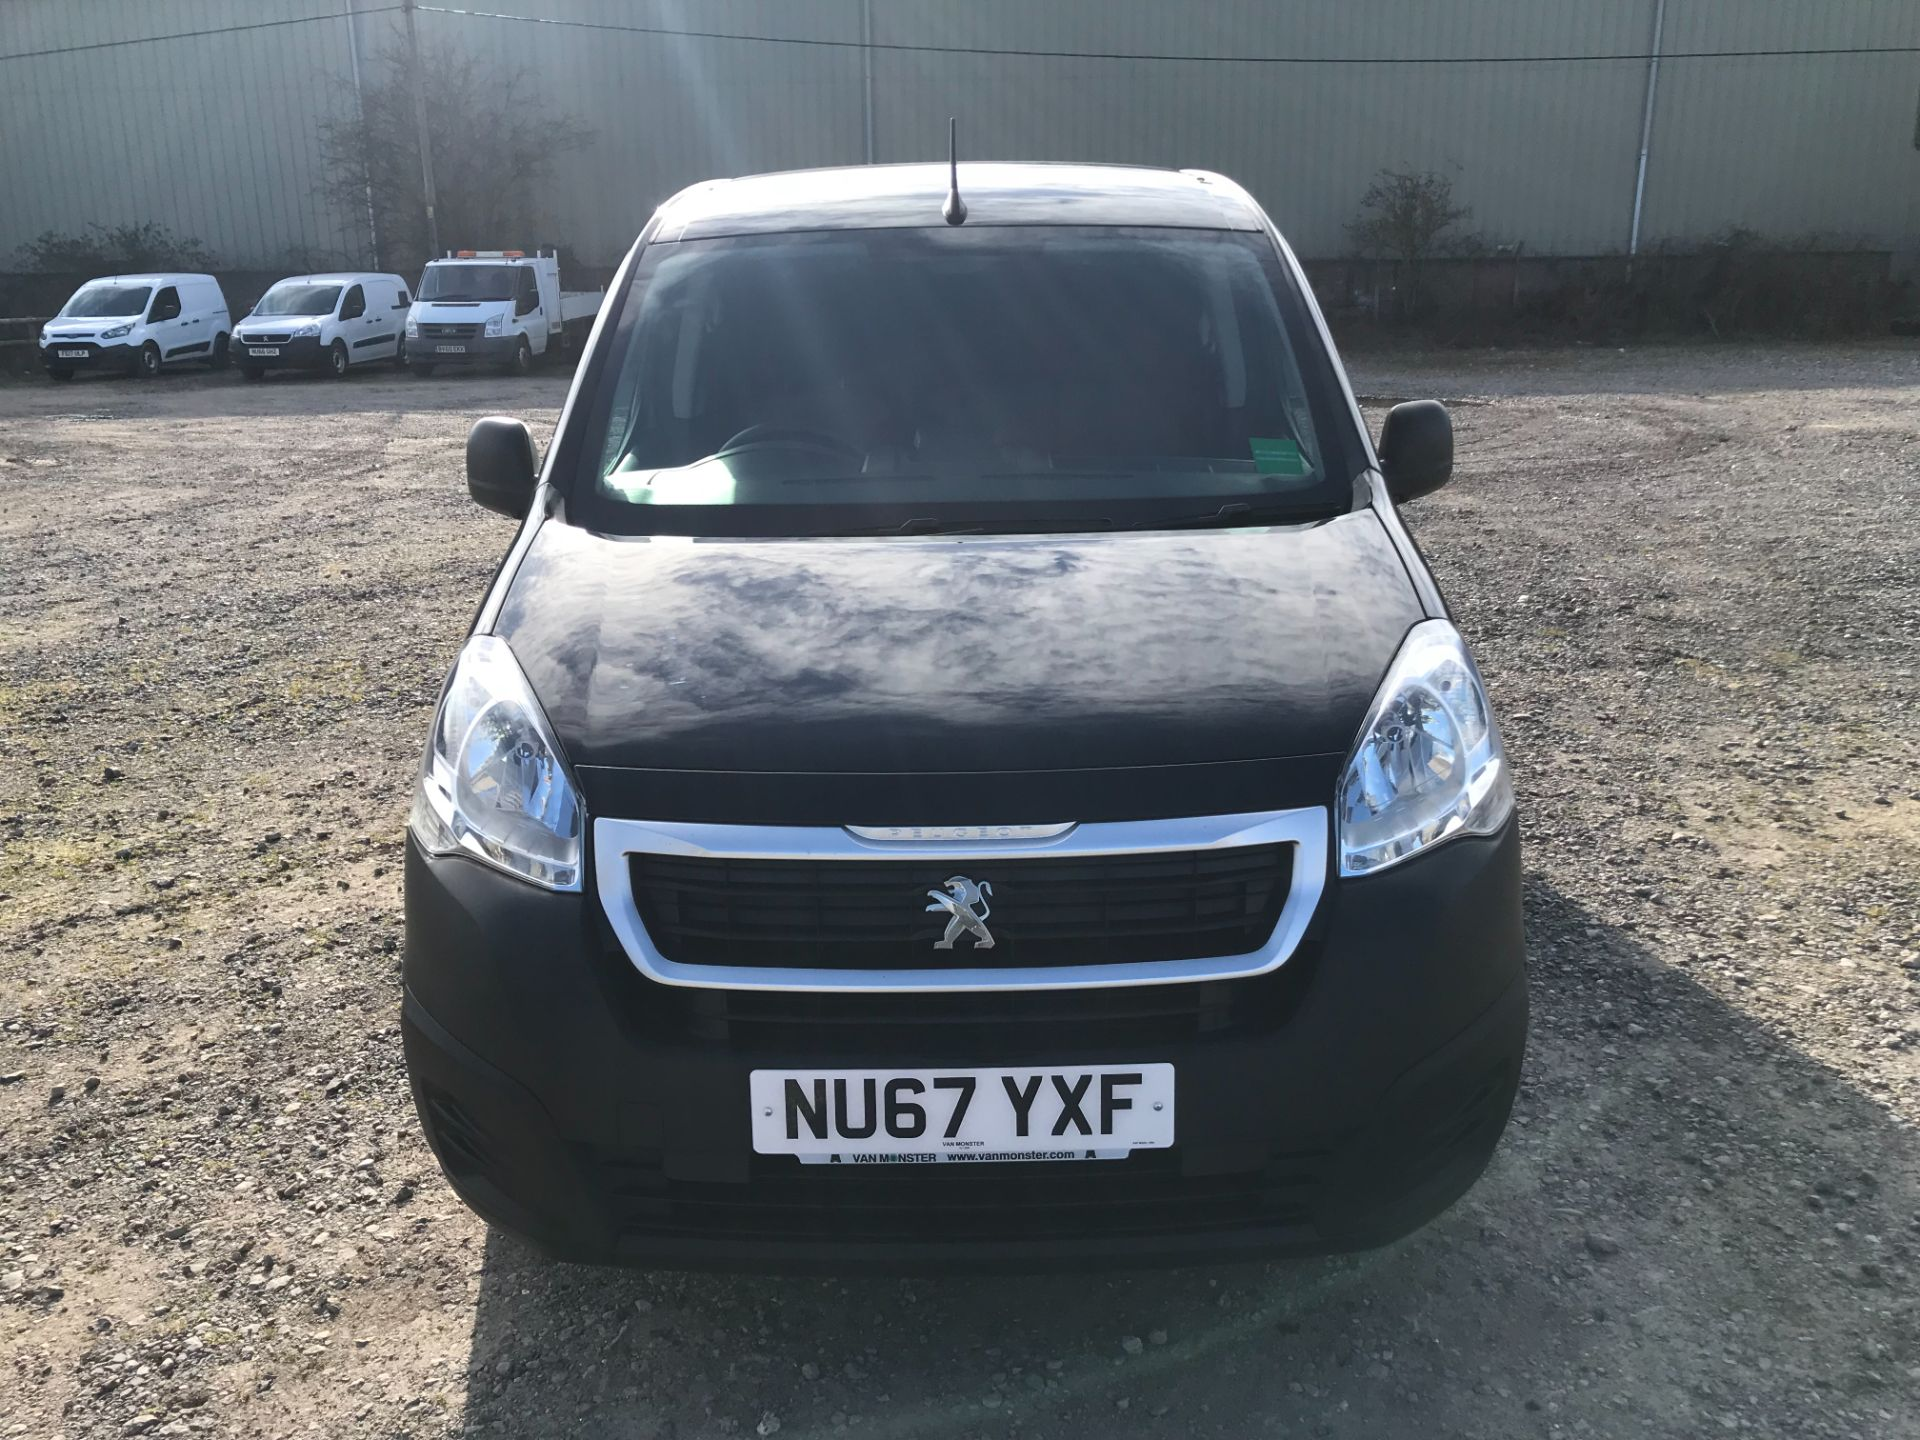 2017 Peugeot Partner 850 1.6 Bluehdi 100 Professional Van [Non Ss] *Restricted to 70 MPH* Euro 6 (NU67YXF) Image 2